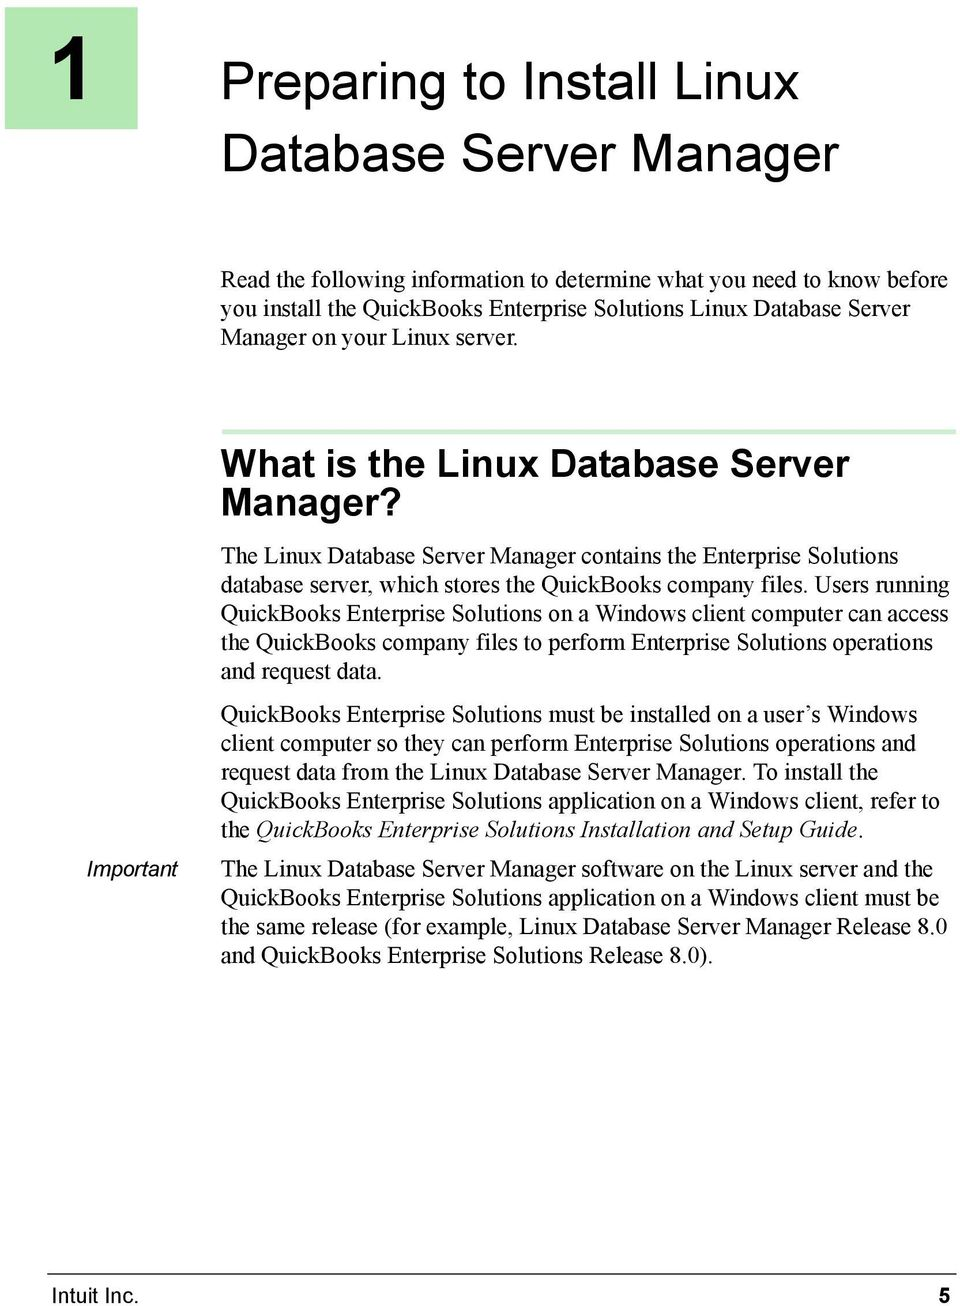 The Linux Database Server Manager contains the Enterprise Solutions database server, which stores the QuickBooks company files.